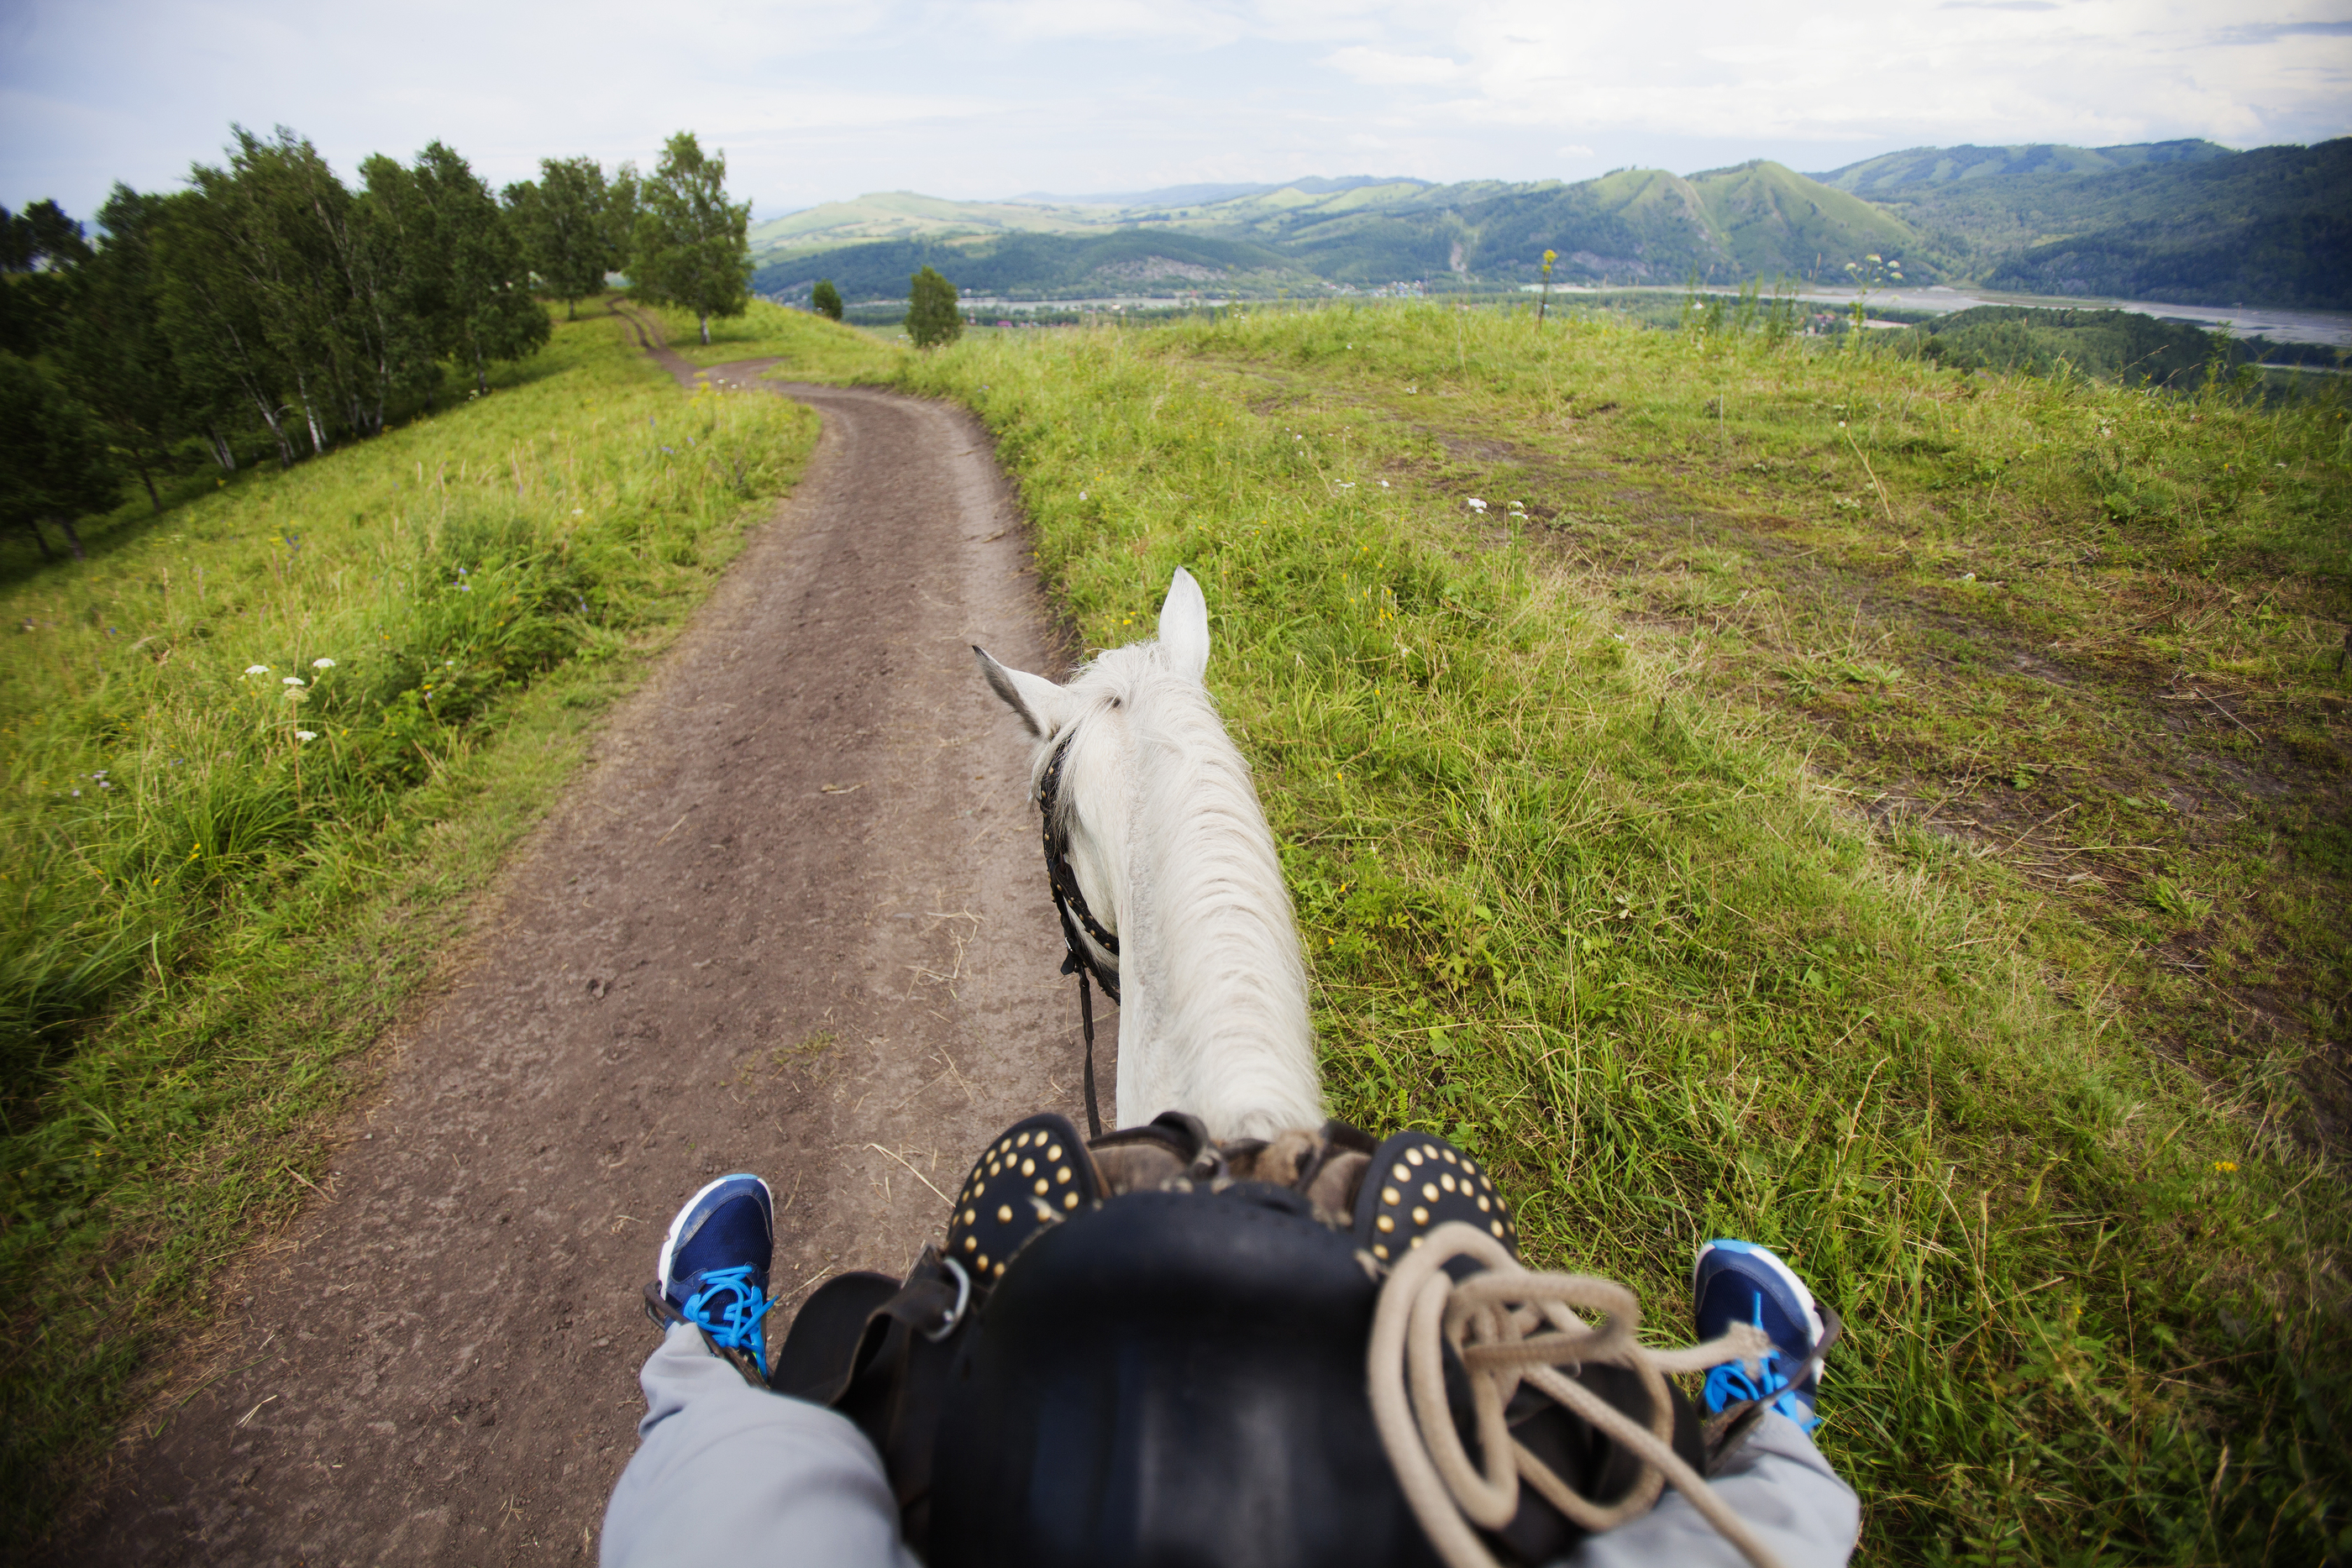 Riding a horse on a rural road. View from the horse